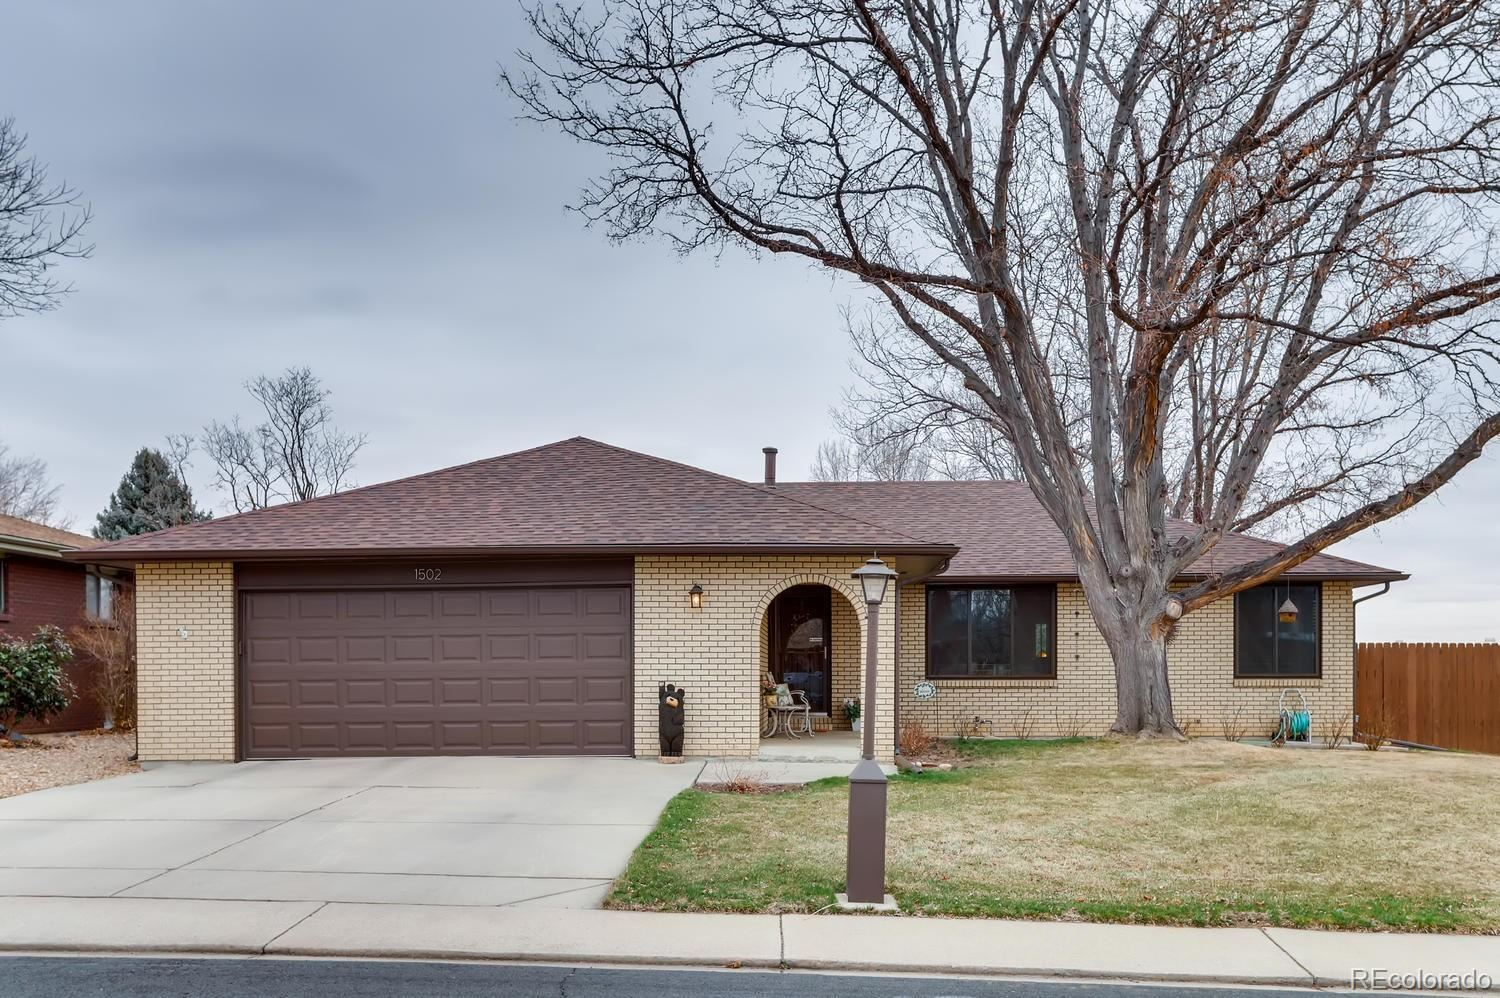 1502 Juniper Street, Longmont, CO 80501 - #: 3835163